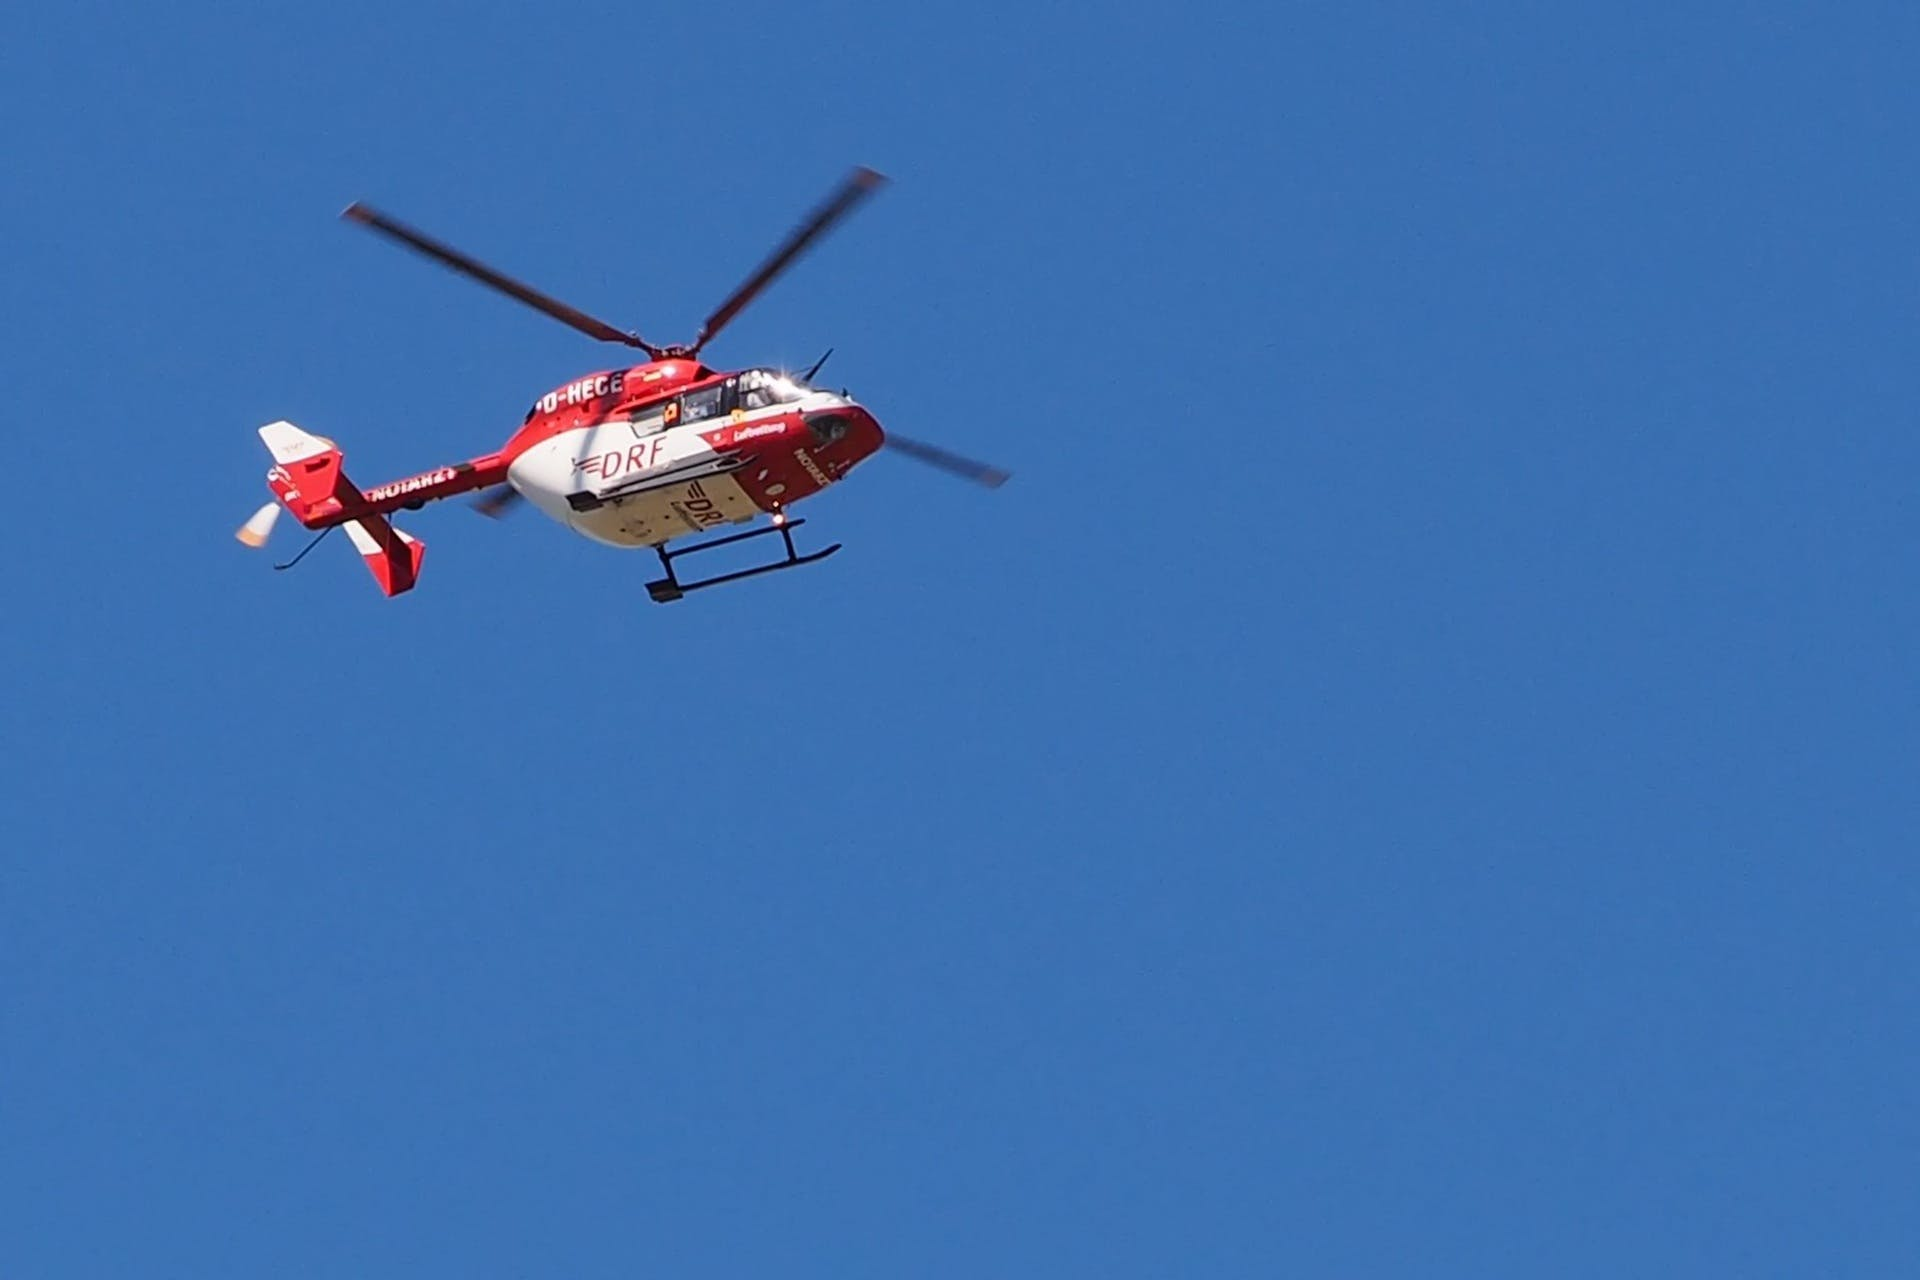 Free stock photo of helicopter, rescue helicopter, air rescue, doctor on call